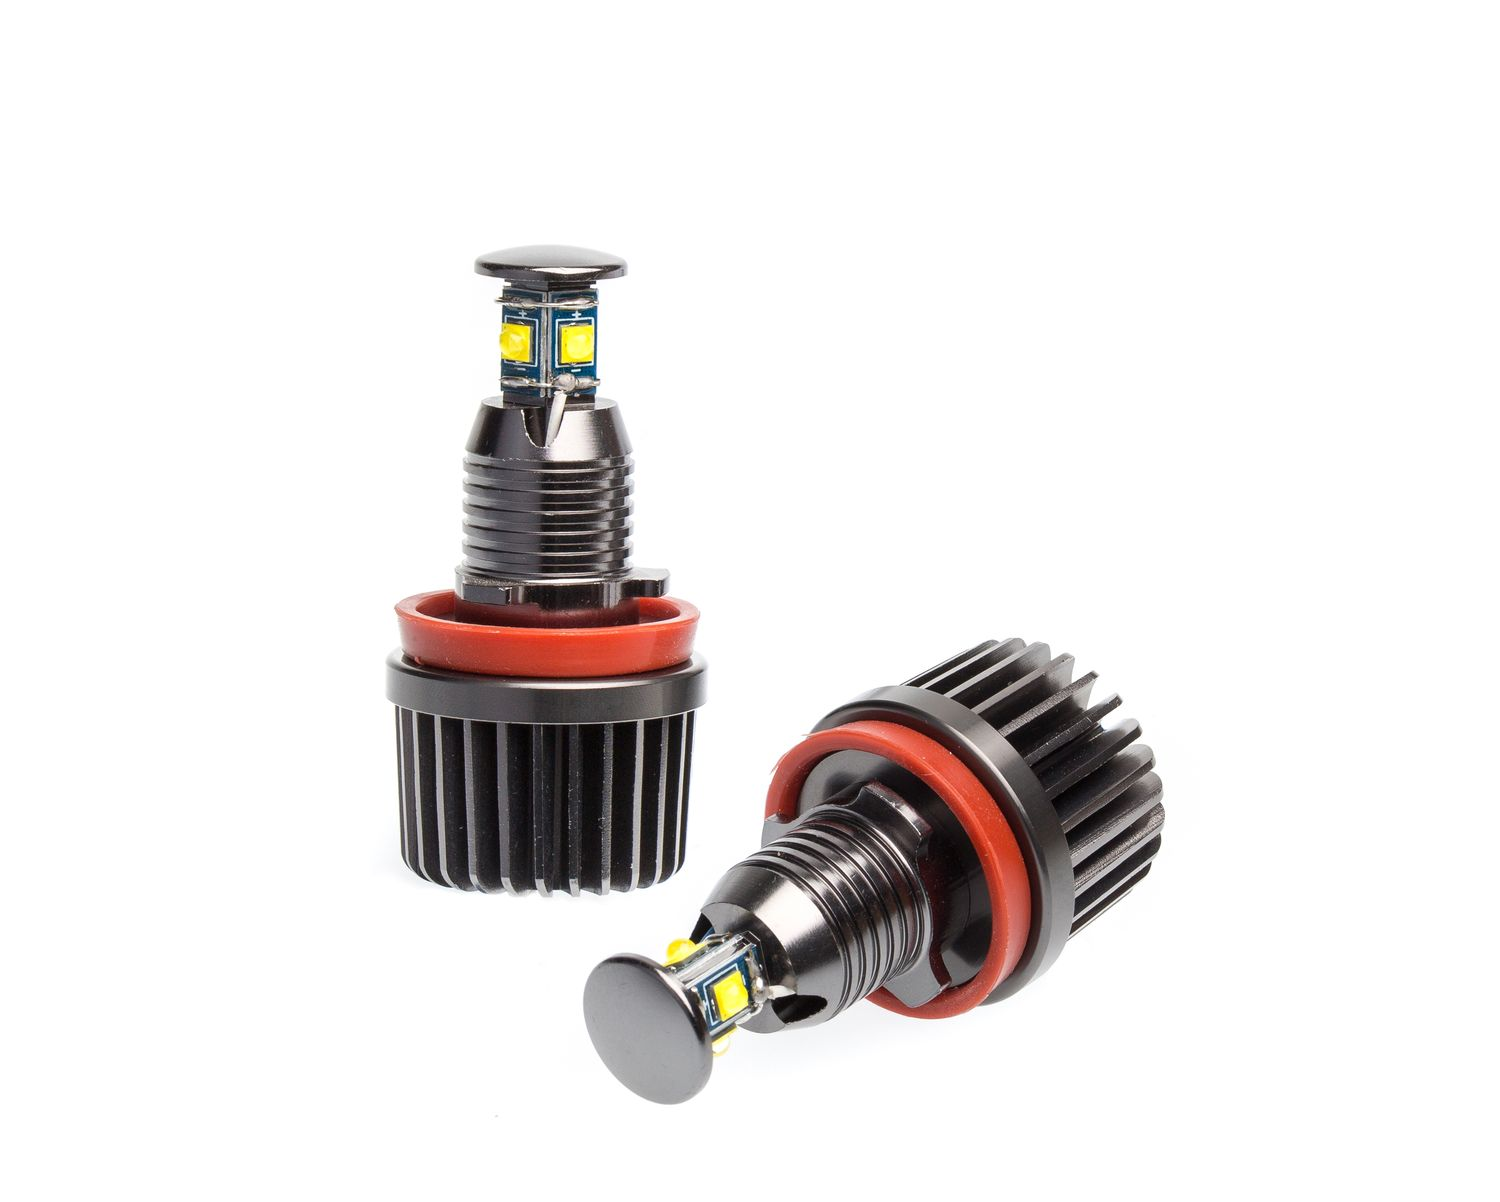 H8 Optima Premium BMW, CREE XT-E*4LED, 40W, 1800lm